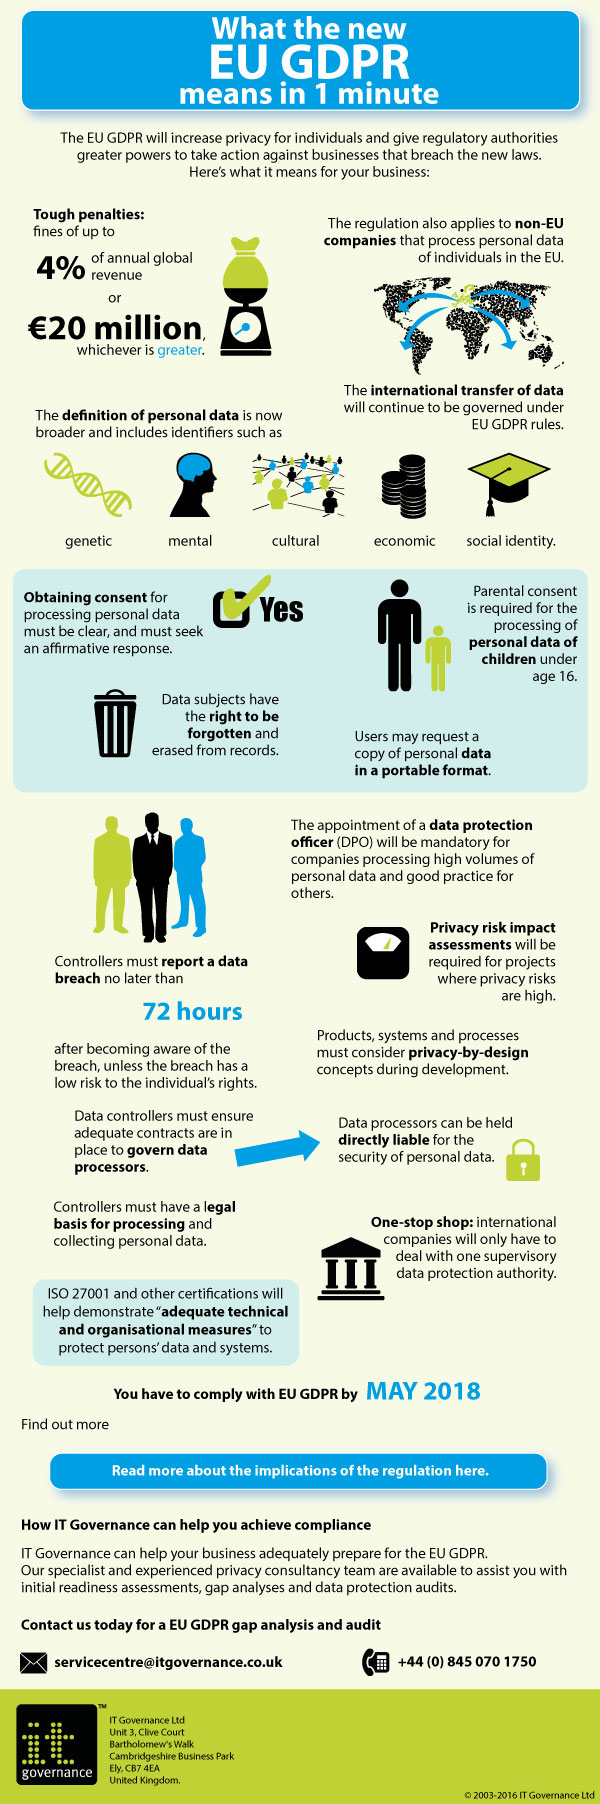 EU GDPR Infographic: What the new Regulation means in 1 minute